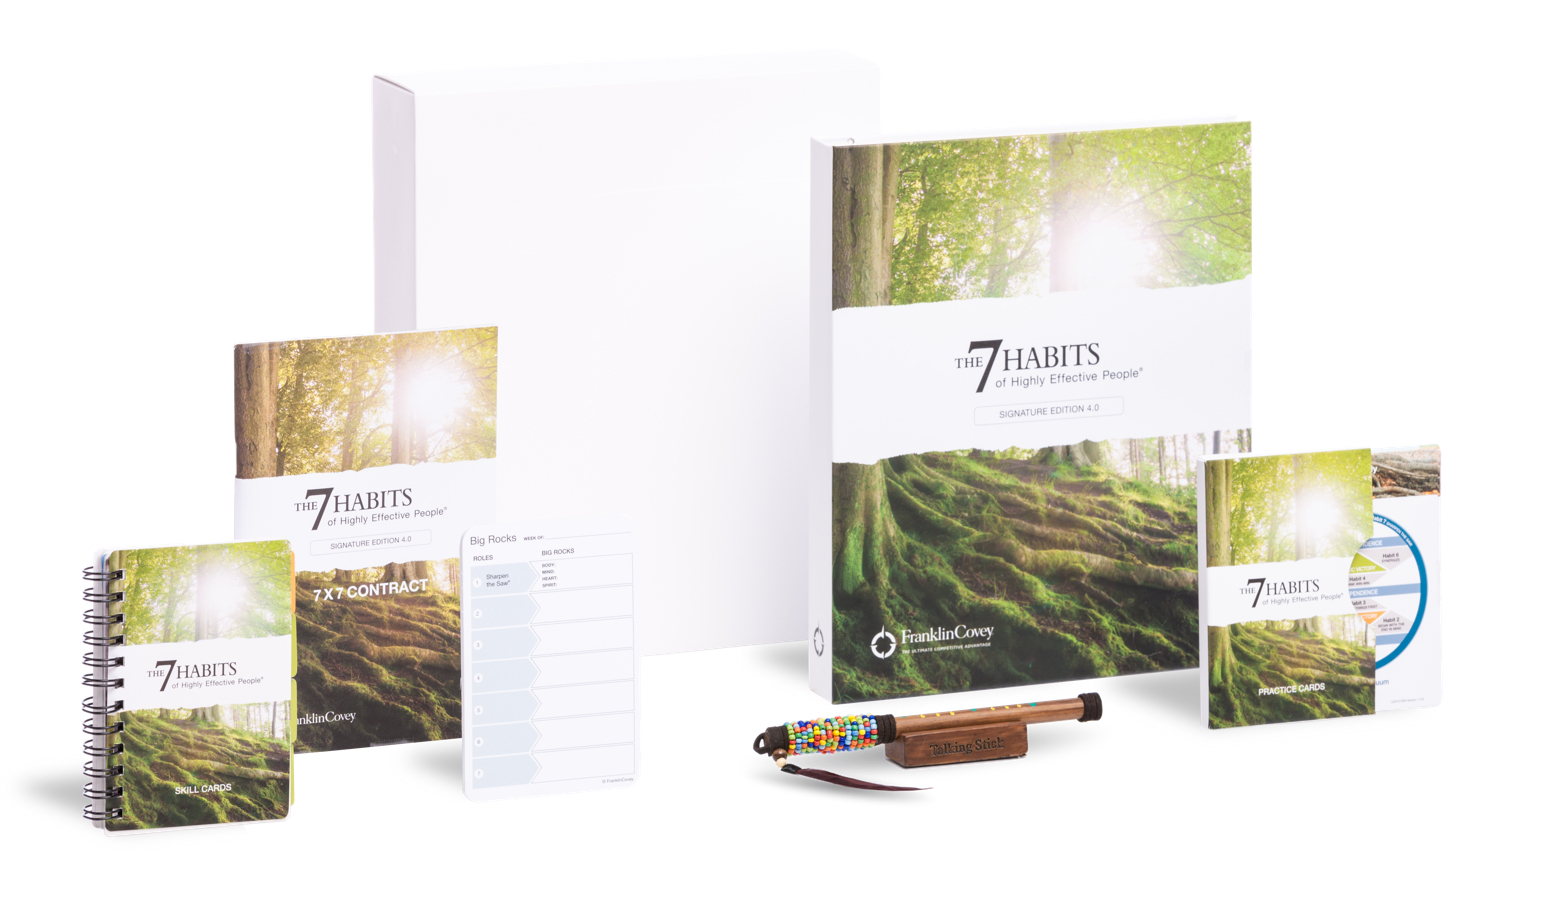 7 habits products